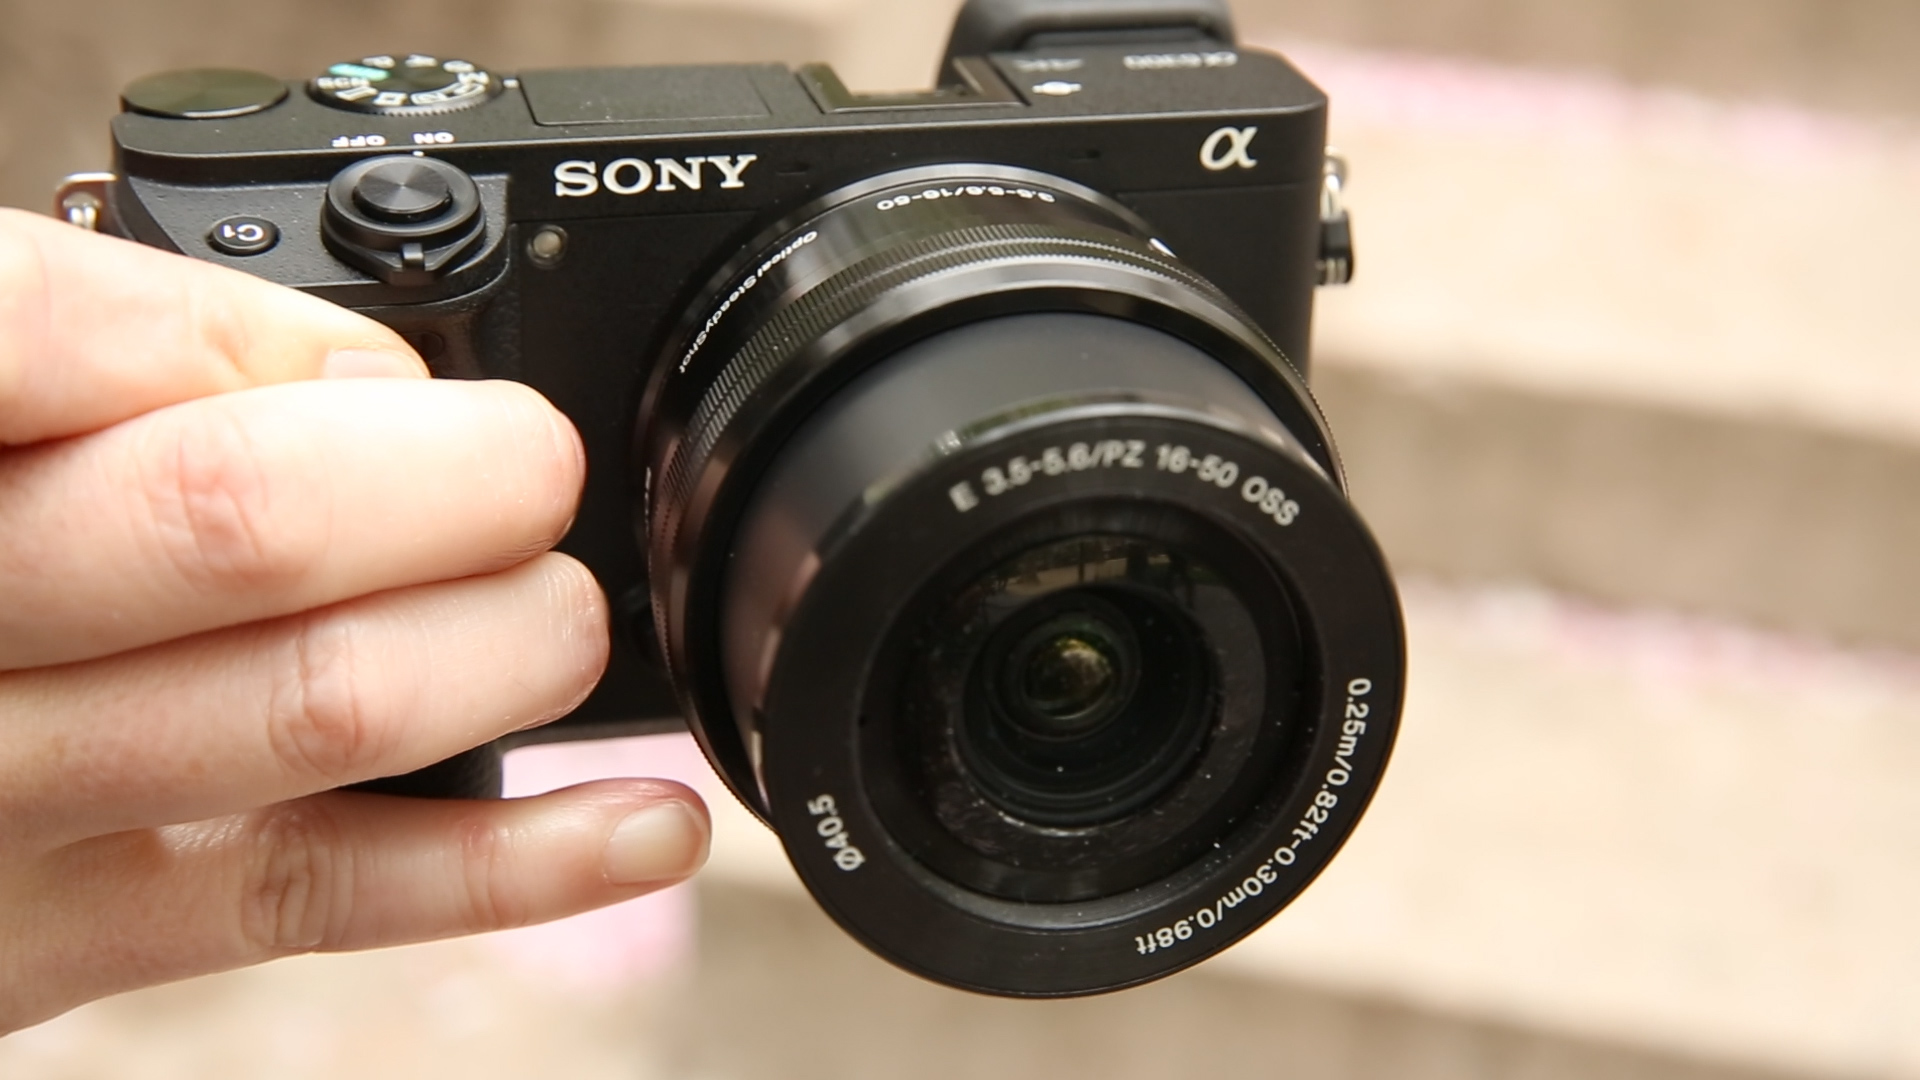 Video: A great mirrorless model gets better